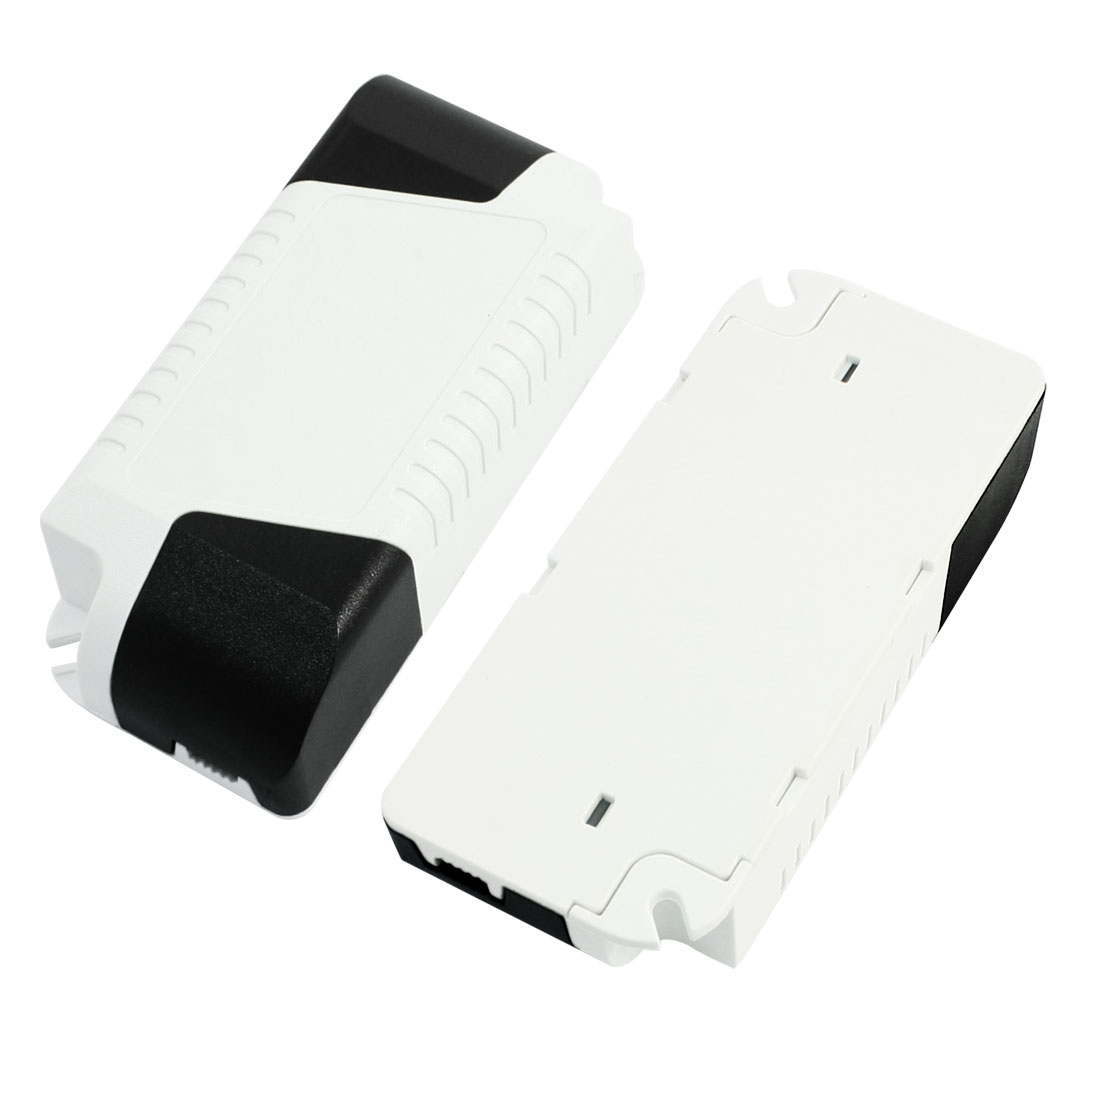 2Pcs White Black 88mmx39mmx25mm LED Driver Enclosure Junction Boxes